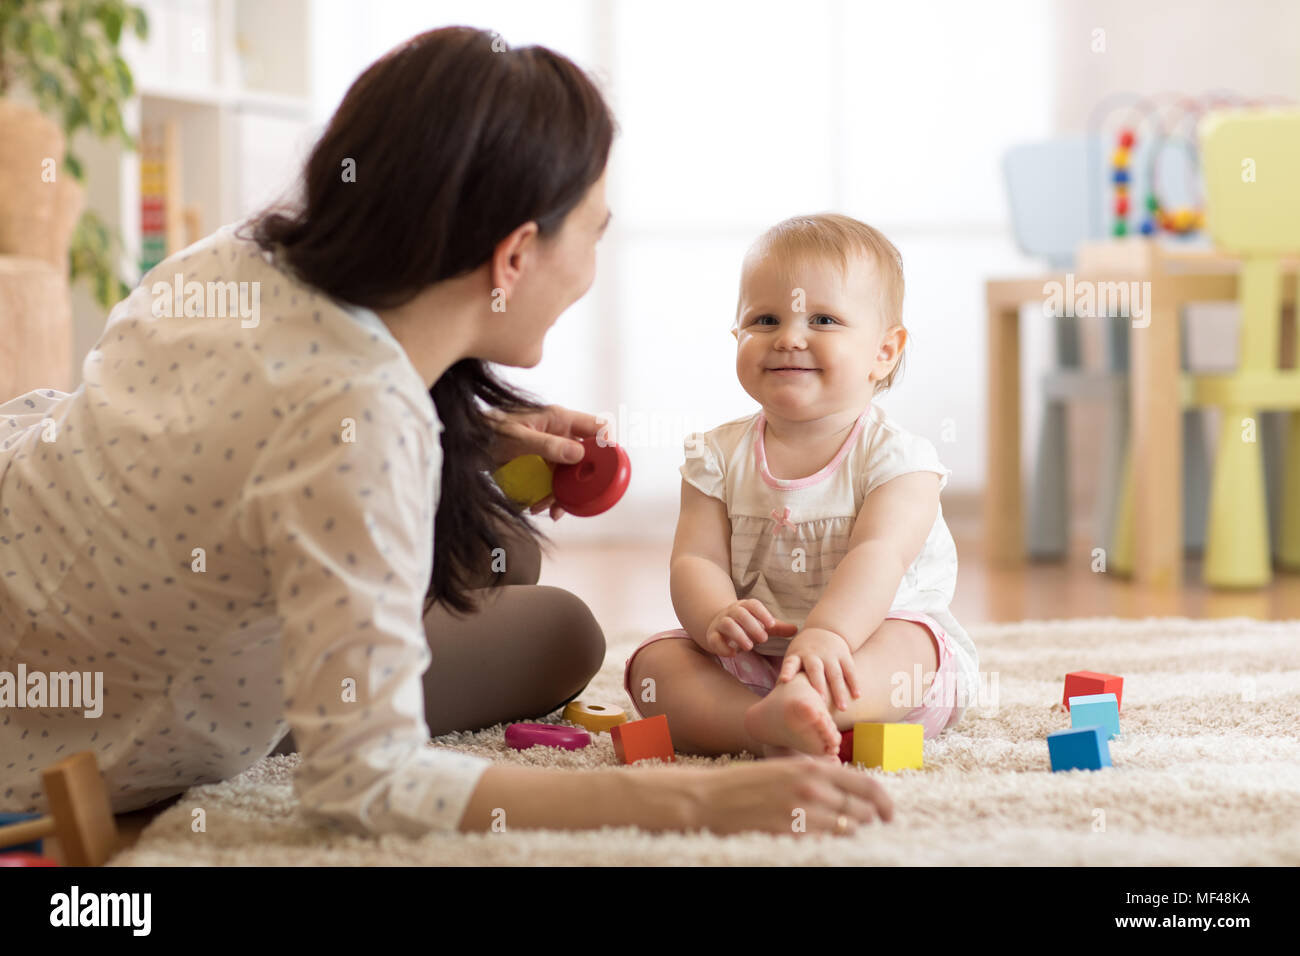 Adorable Baby Girl Playing With Educational Toys In Nursery Child